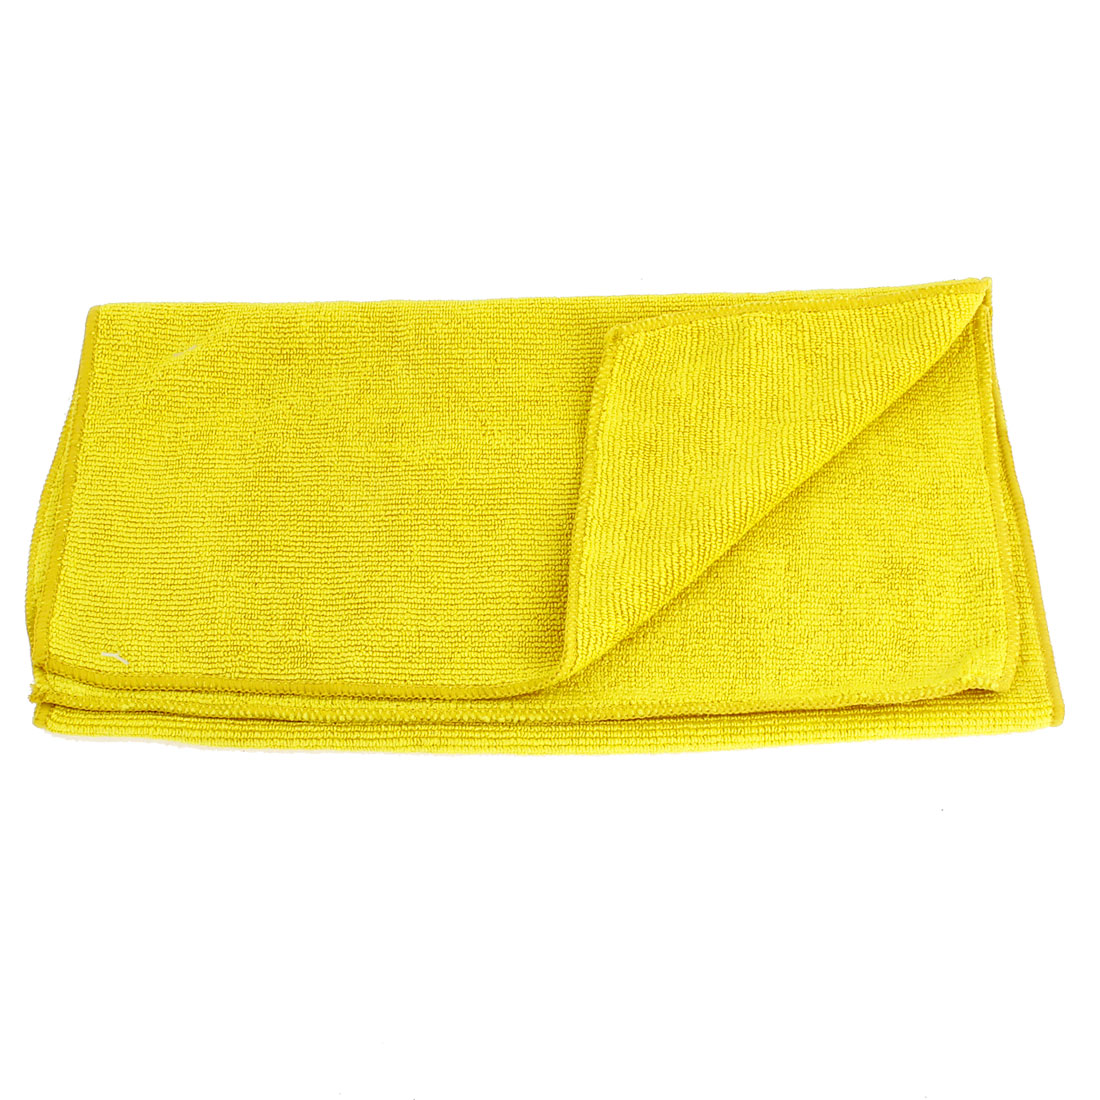 Yellow Rectangle Soft Microfiber Towel Car Auto Cleaning Cloth 64cm x 32cm